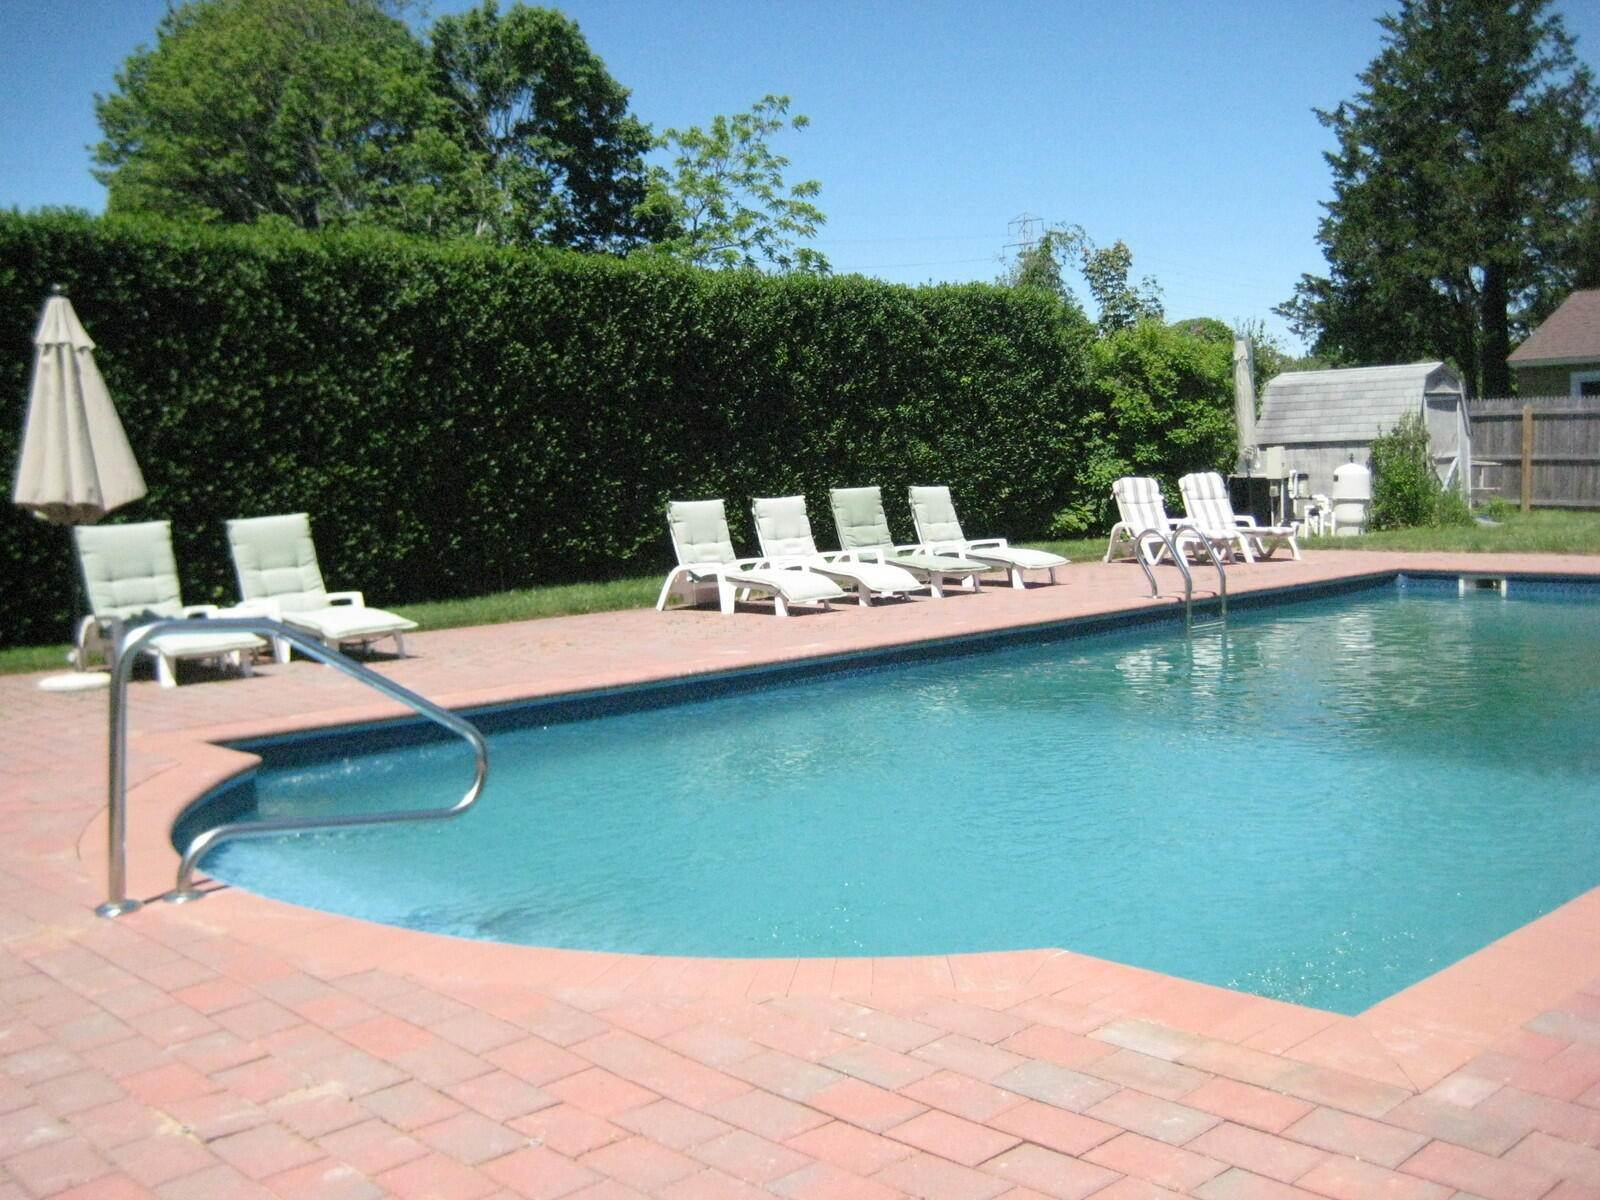 Single Family Home at Village Three Bedroom Cottage With Pool Southampton, NY 11968